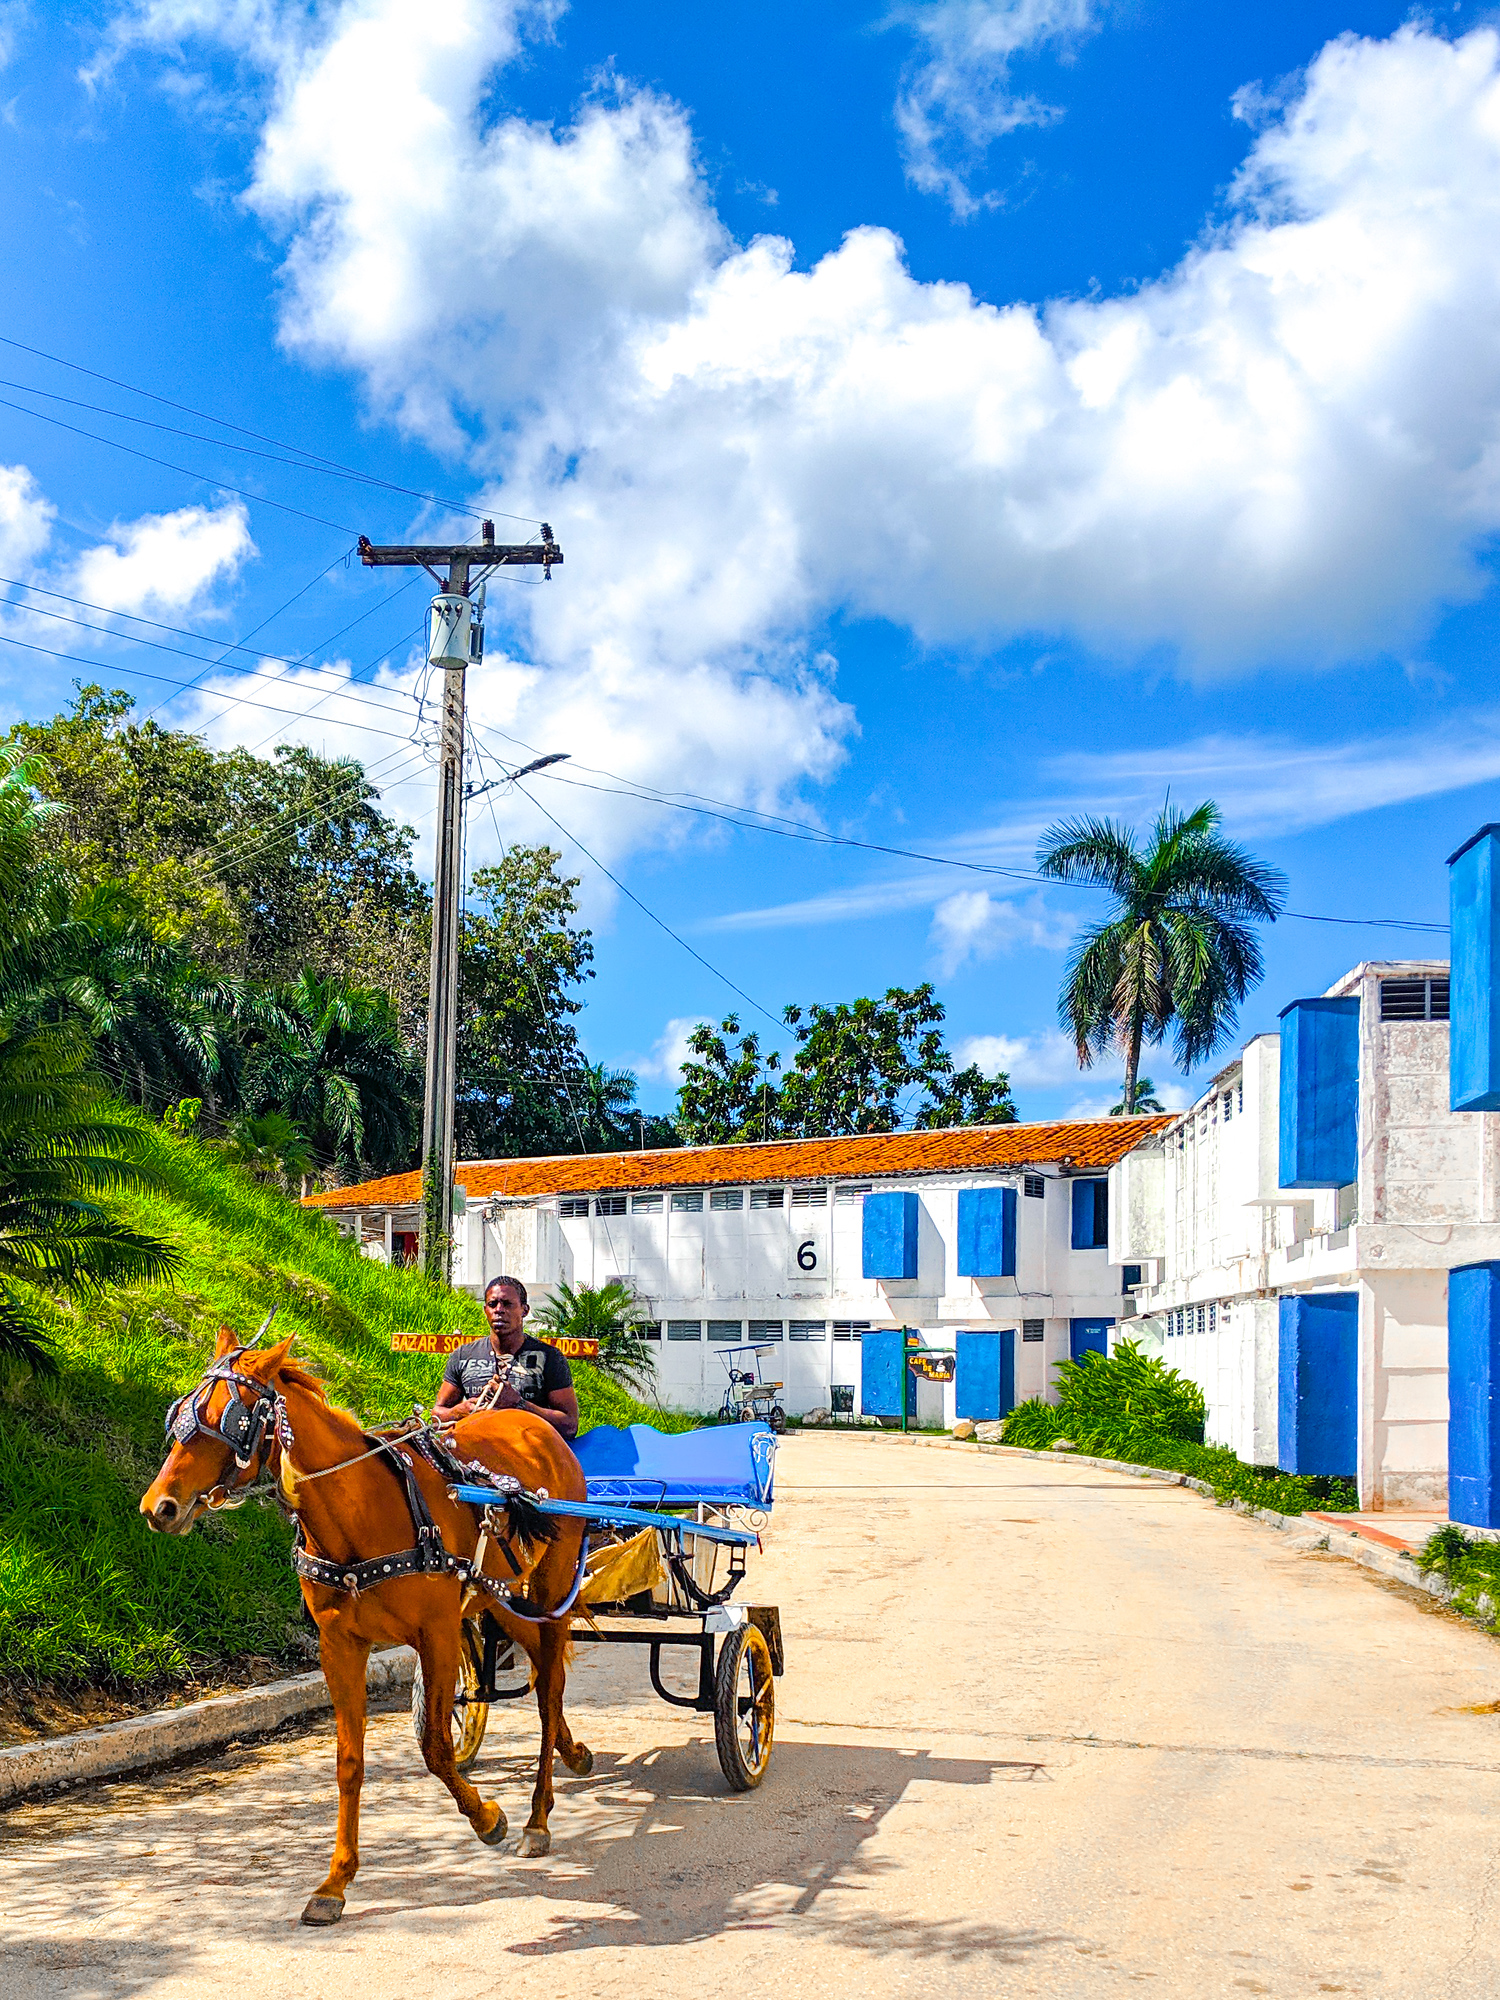 Las Terrazas Cuba is a great day trip from Havana and one of the best places to visit in Cuba.